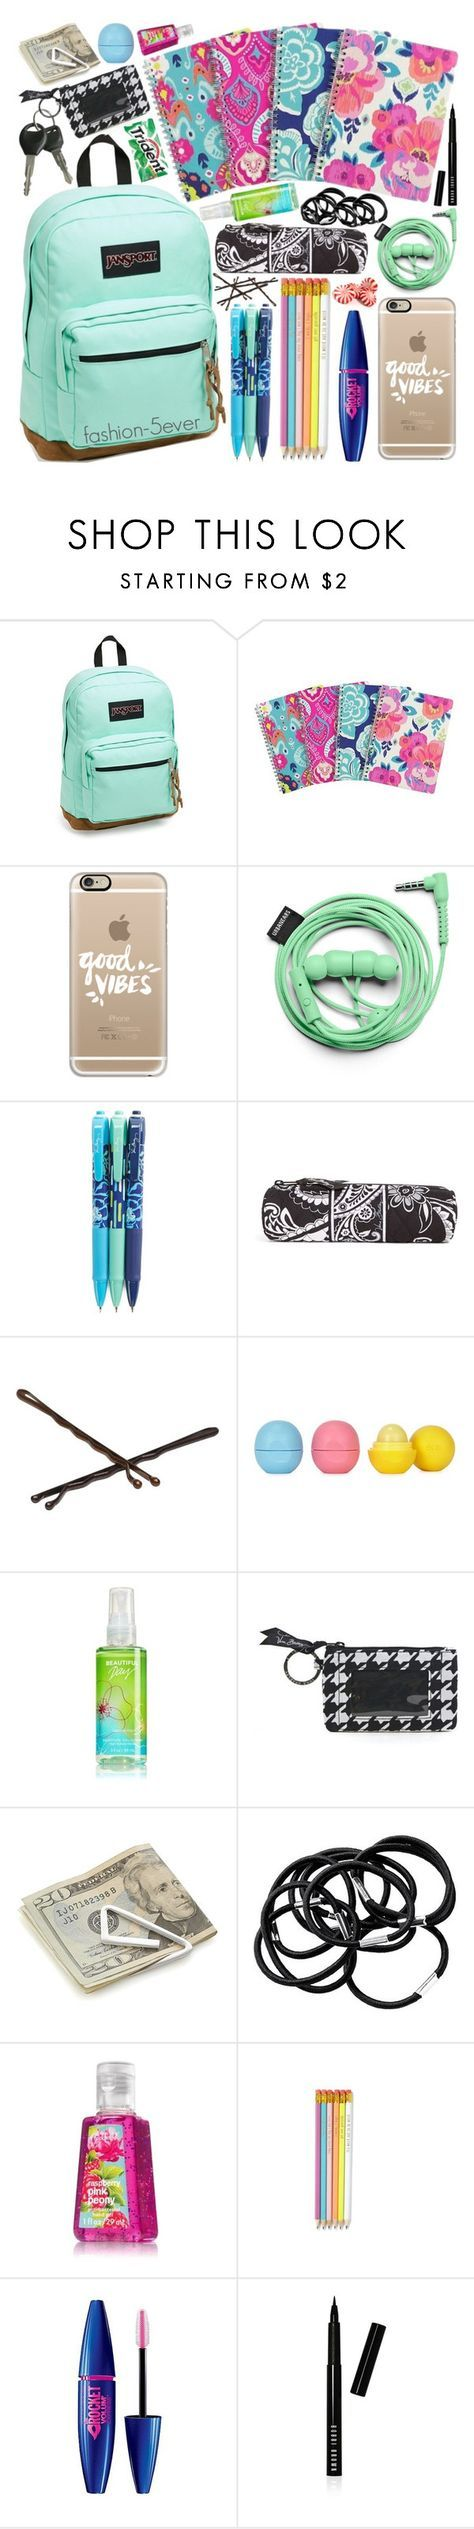 """What's in my backpack ft. my new backpack!"" by itsfashion-5ever ❤ liked on Polyvore featuring JanSport, Casetify, Urbanears, Vera Bradley, Goody, Eos, Crate and Barrel, H&M, Maybelline and Bobbi Brown Cosmetics"